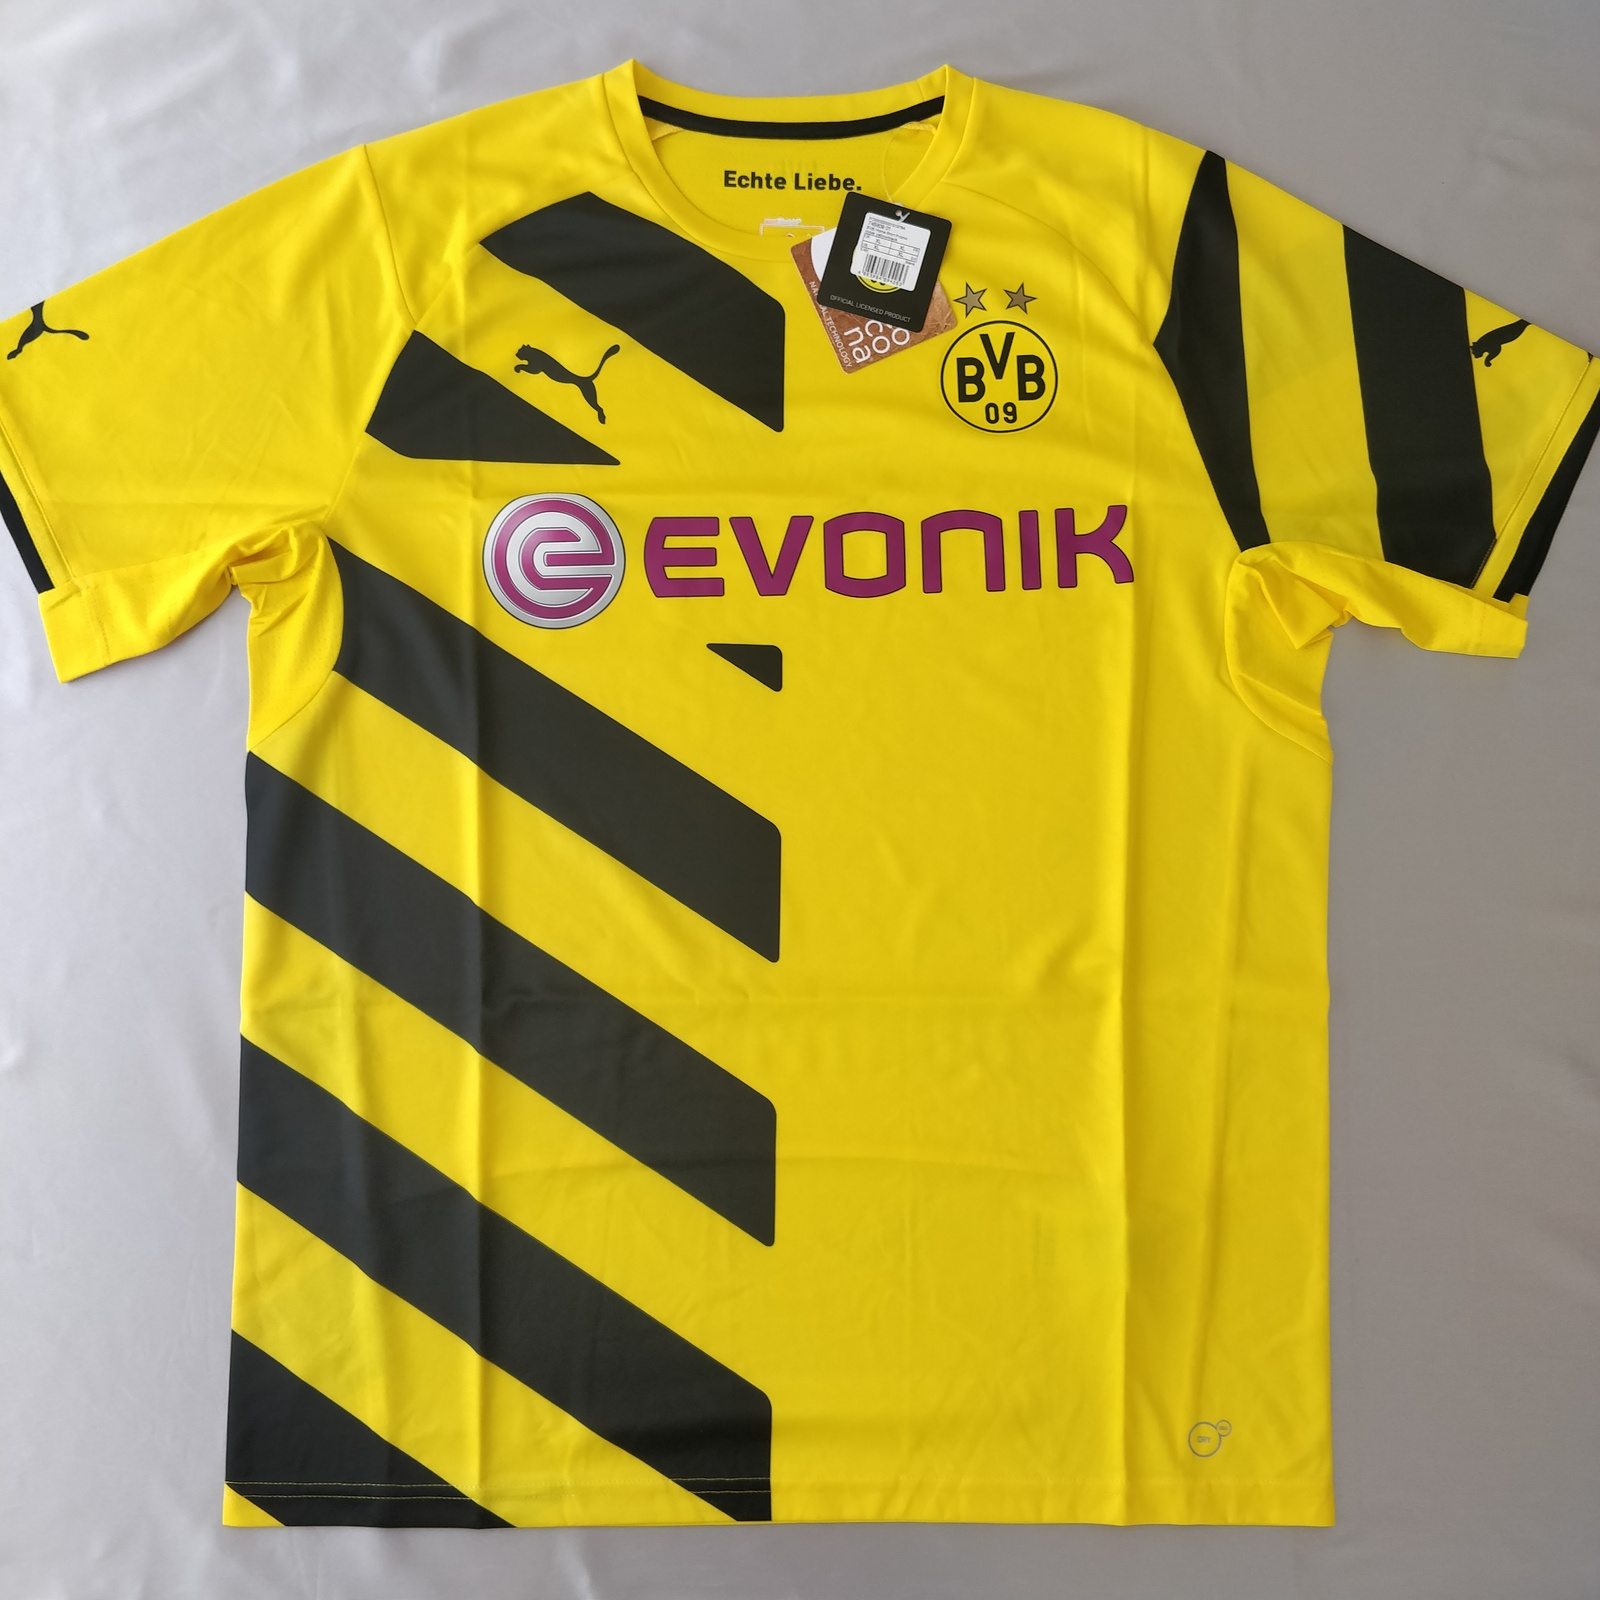 Primary image for Borussia Dortmund 2014/15 Home Jersey Fans Version %100 Original